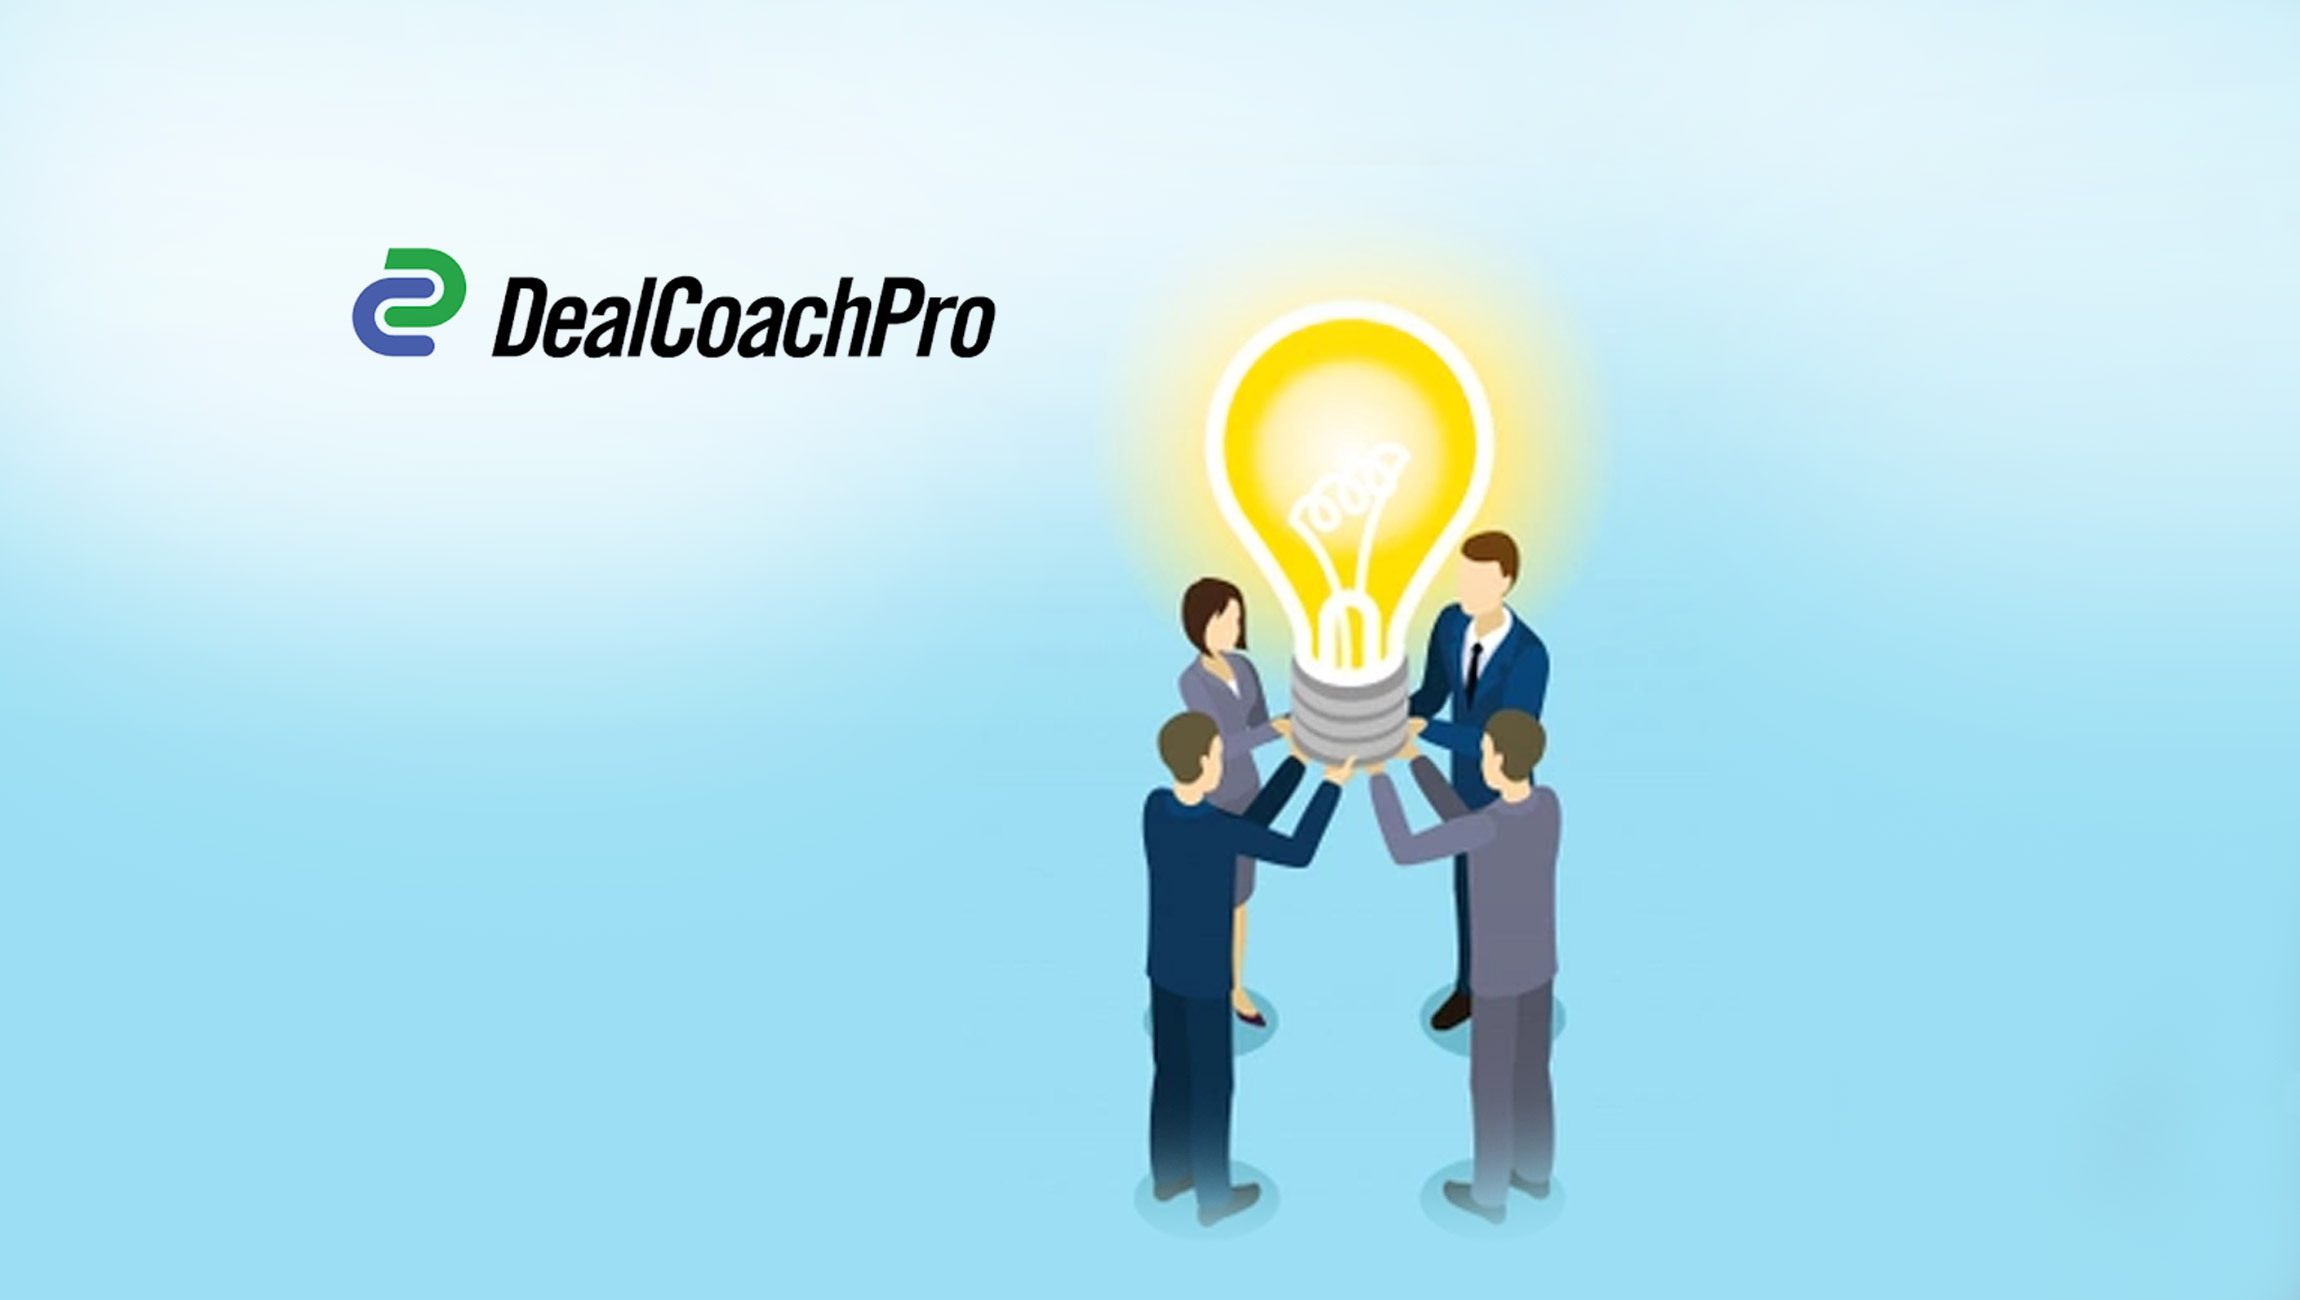 DealCoachPro-Secures-Second-Patent-for-its-Exclusive-Sales-Technology